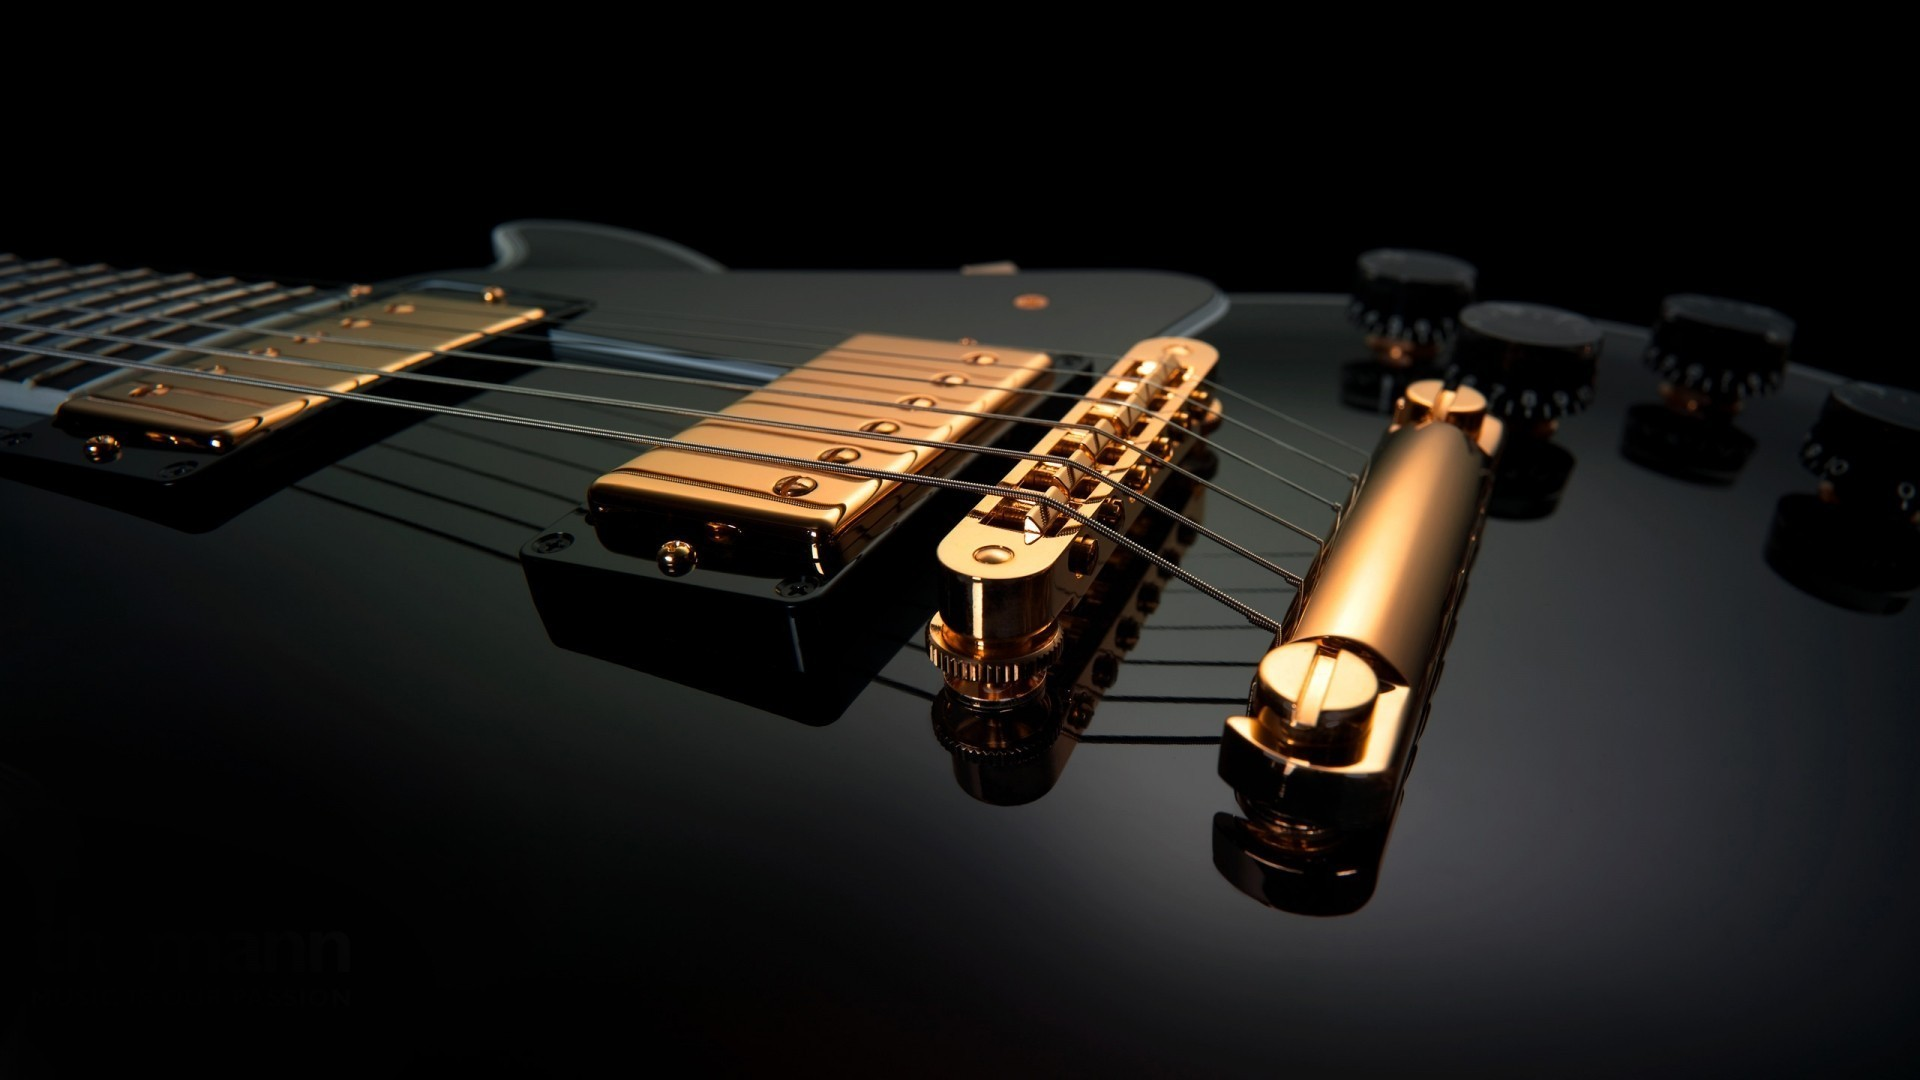 Res: 1920x1080, Black and gold guitars music wallpaper